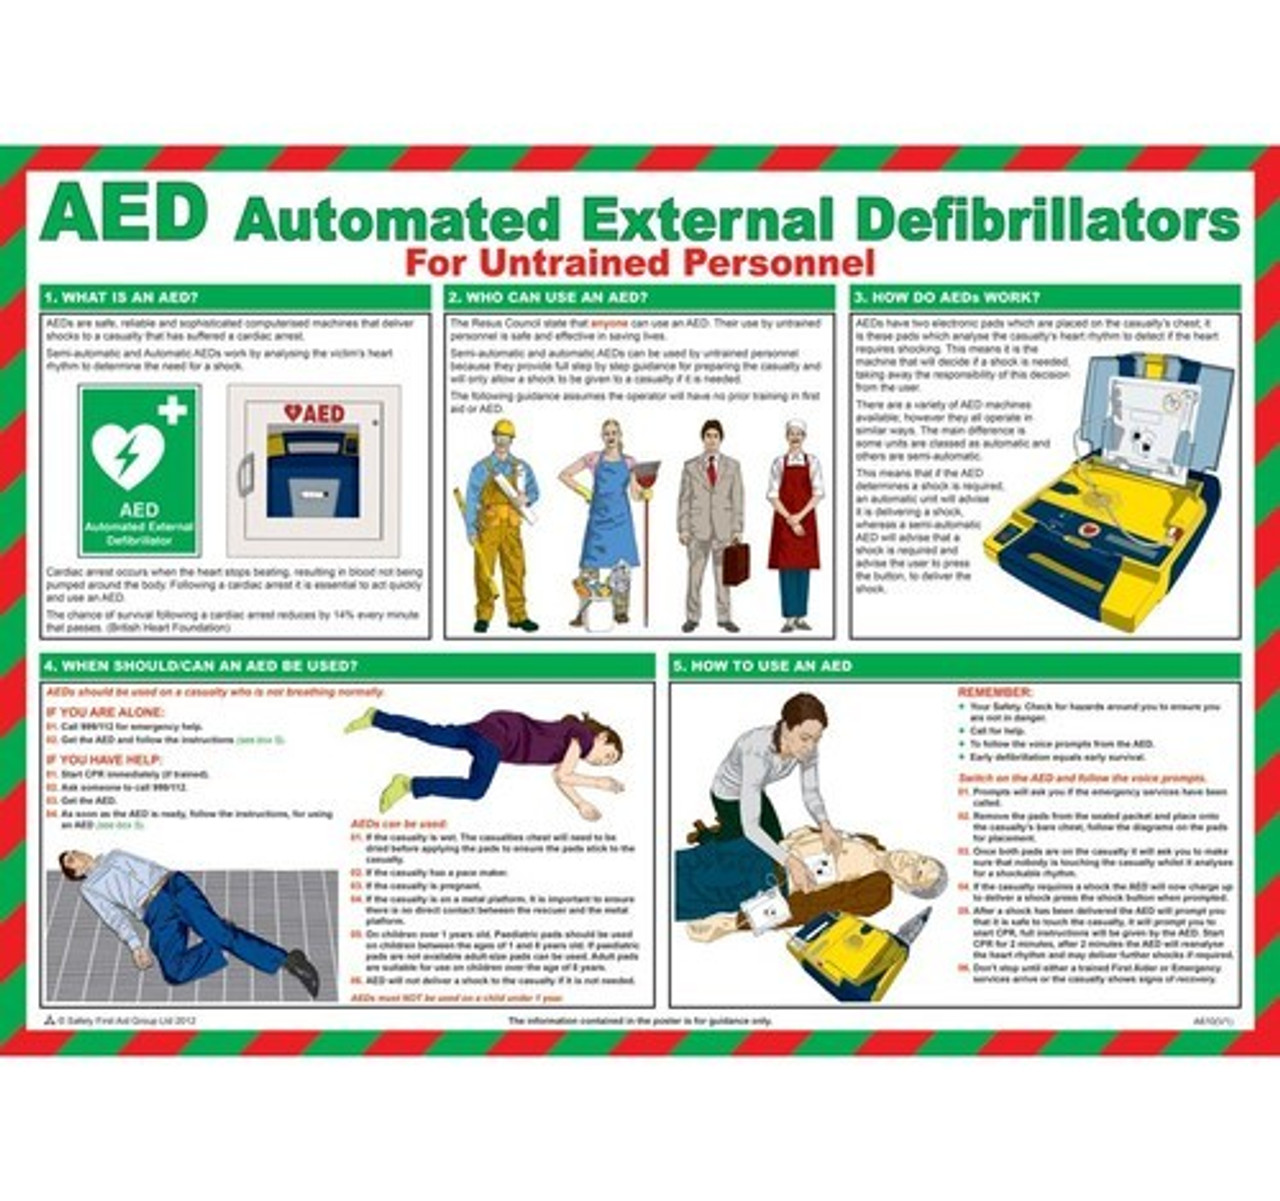 AED Defibrillator Signs & Posters